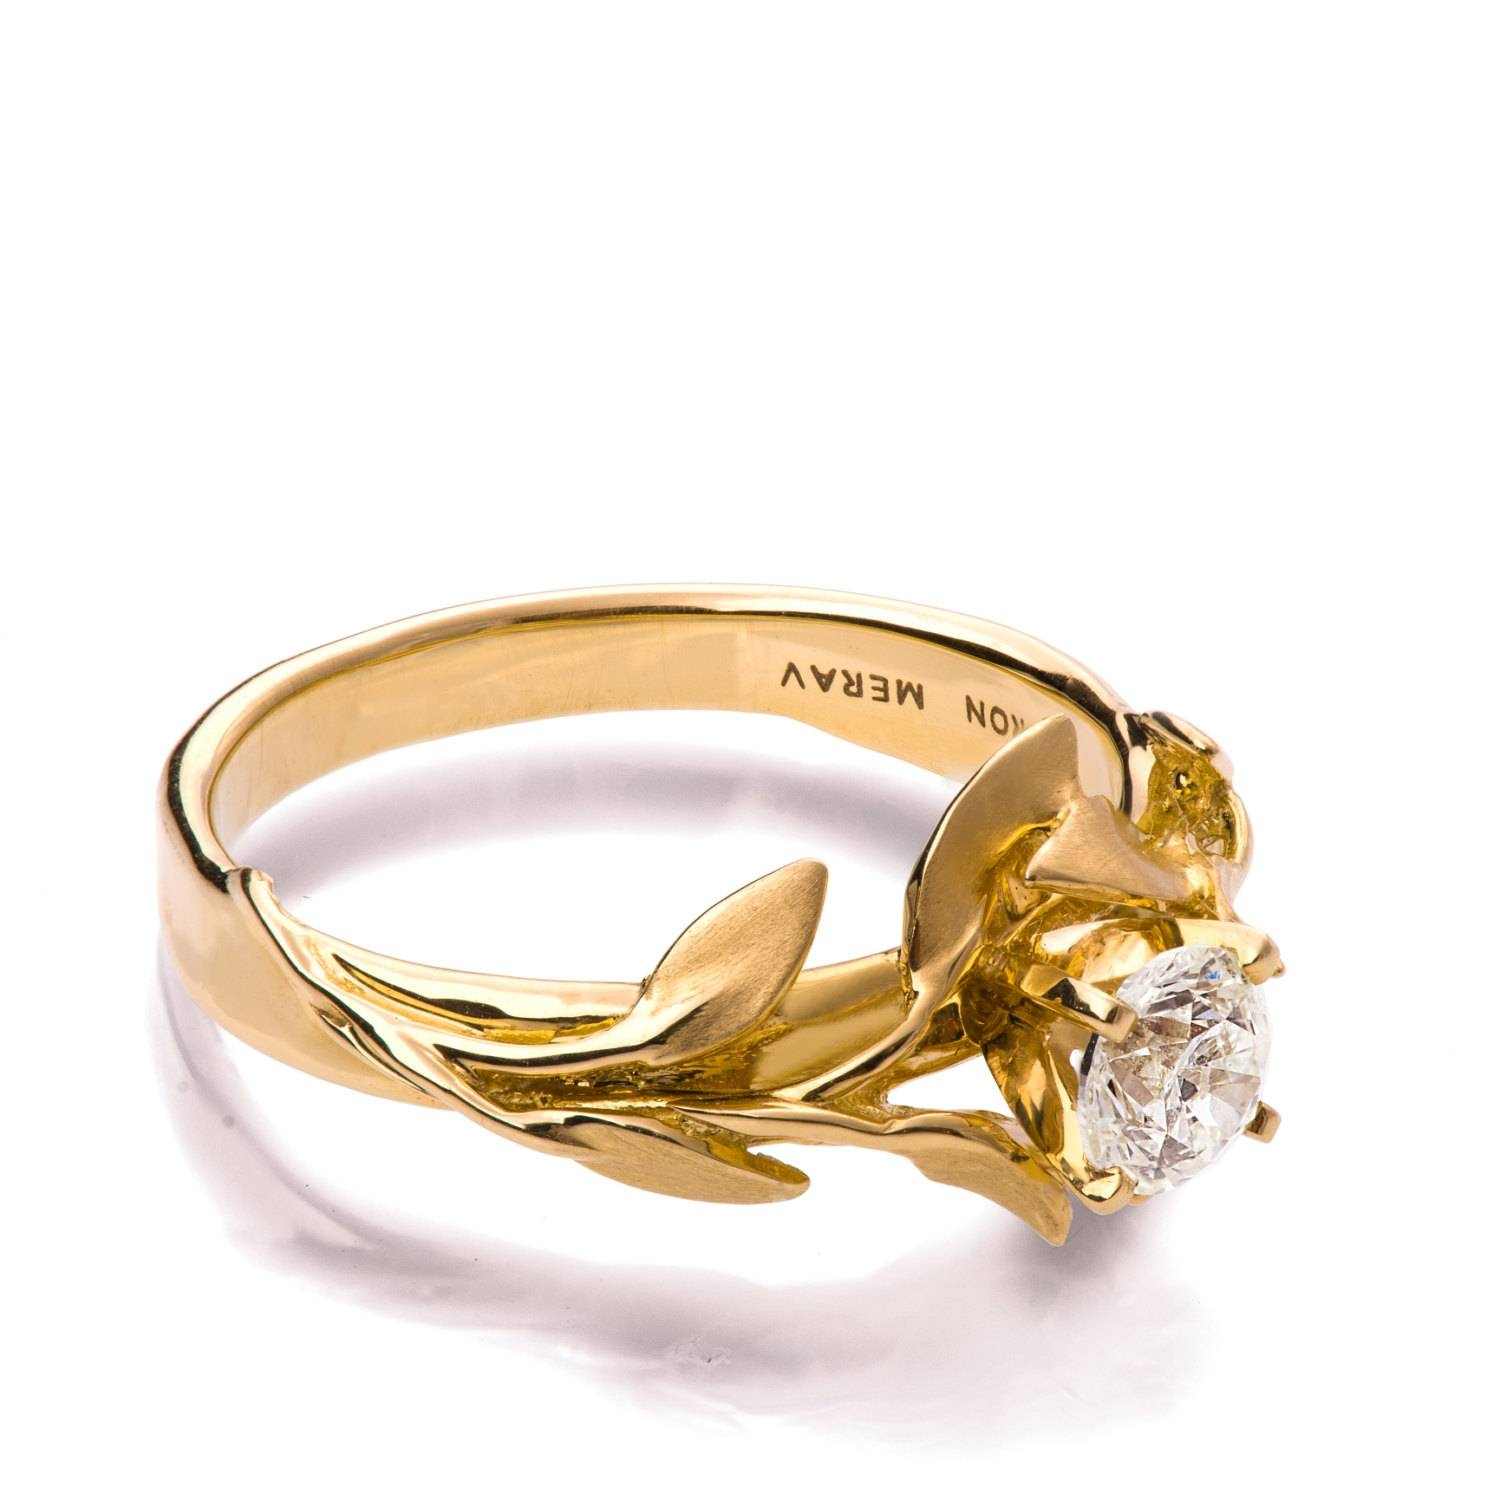 Leaves Engagement Ring No.4 18K Yellow Gold And Diamond Throughout Engagement Rings Without Stone (Gallery 7 of 15)